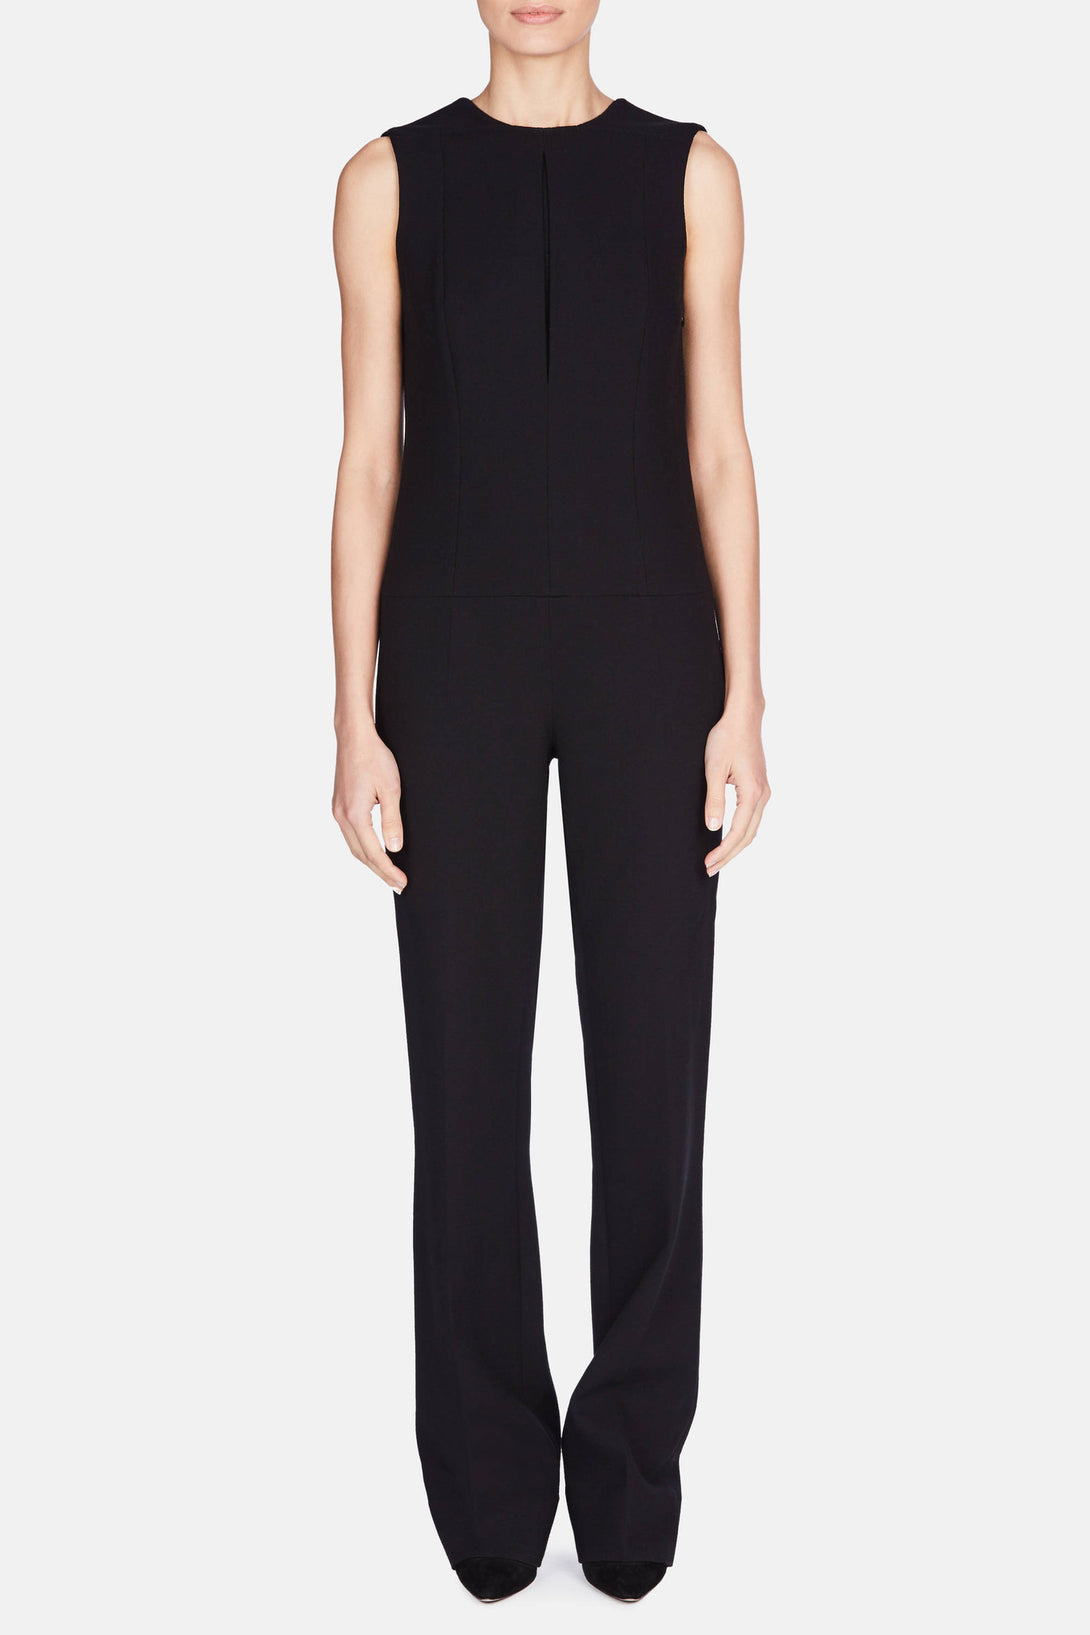 Jumpsuit 03 Low Back Jumpsuit - Black